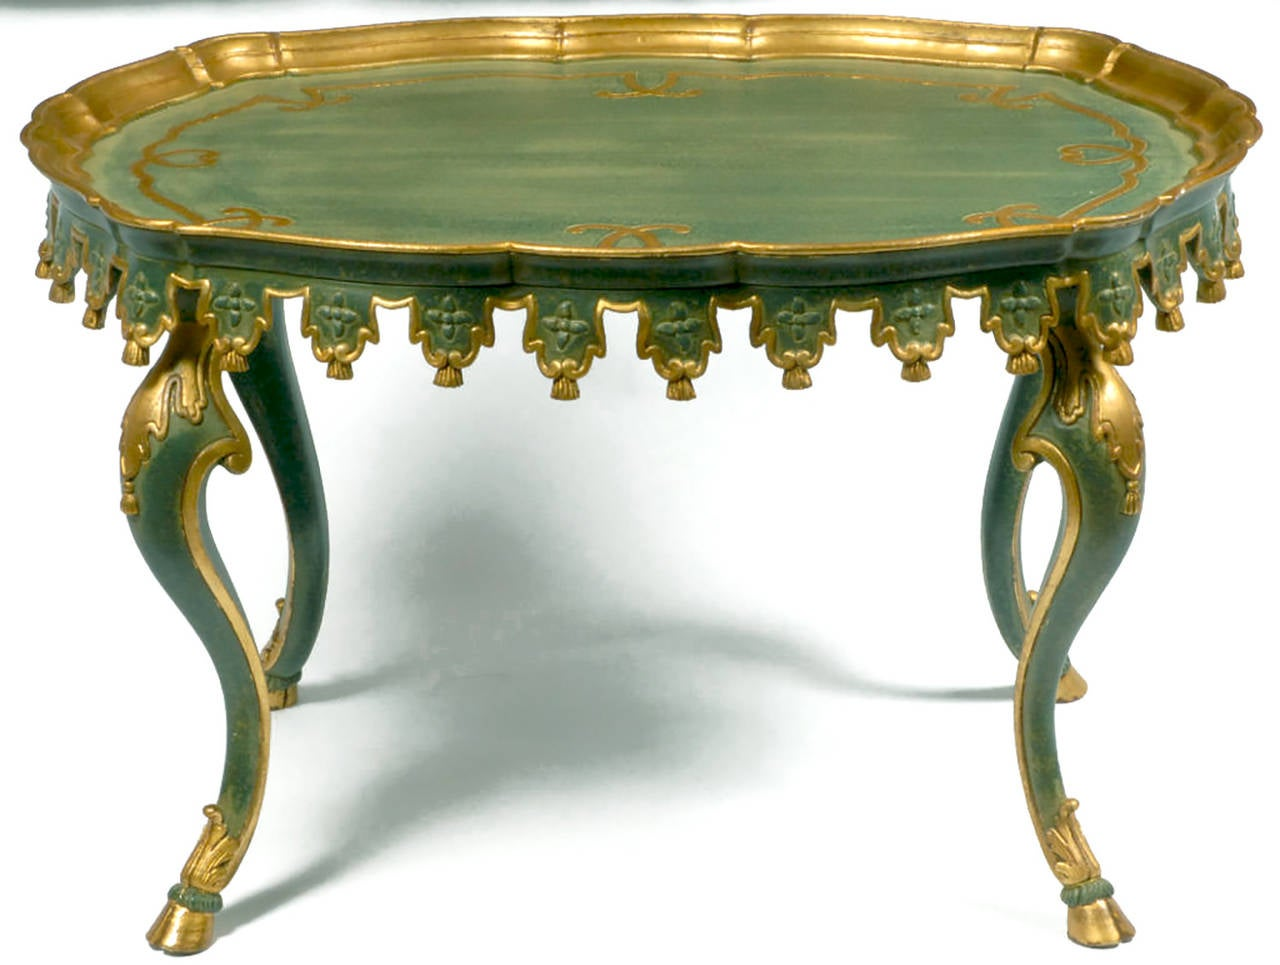 Shaped like a squared-off oval, this table is carved of wood, including tassel ornamentation and hoof feet crested with acanthus leaf trim. Painted a lovely teal blue-green, with an ivory over glaze, it is accented by gilded trim. Marked